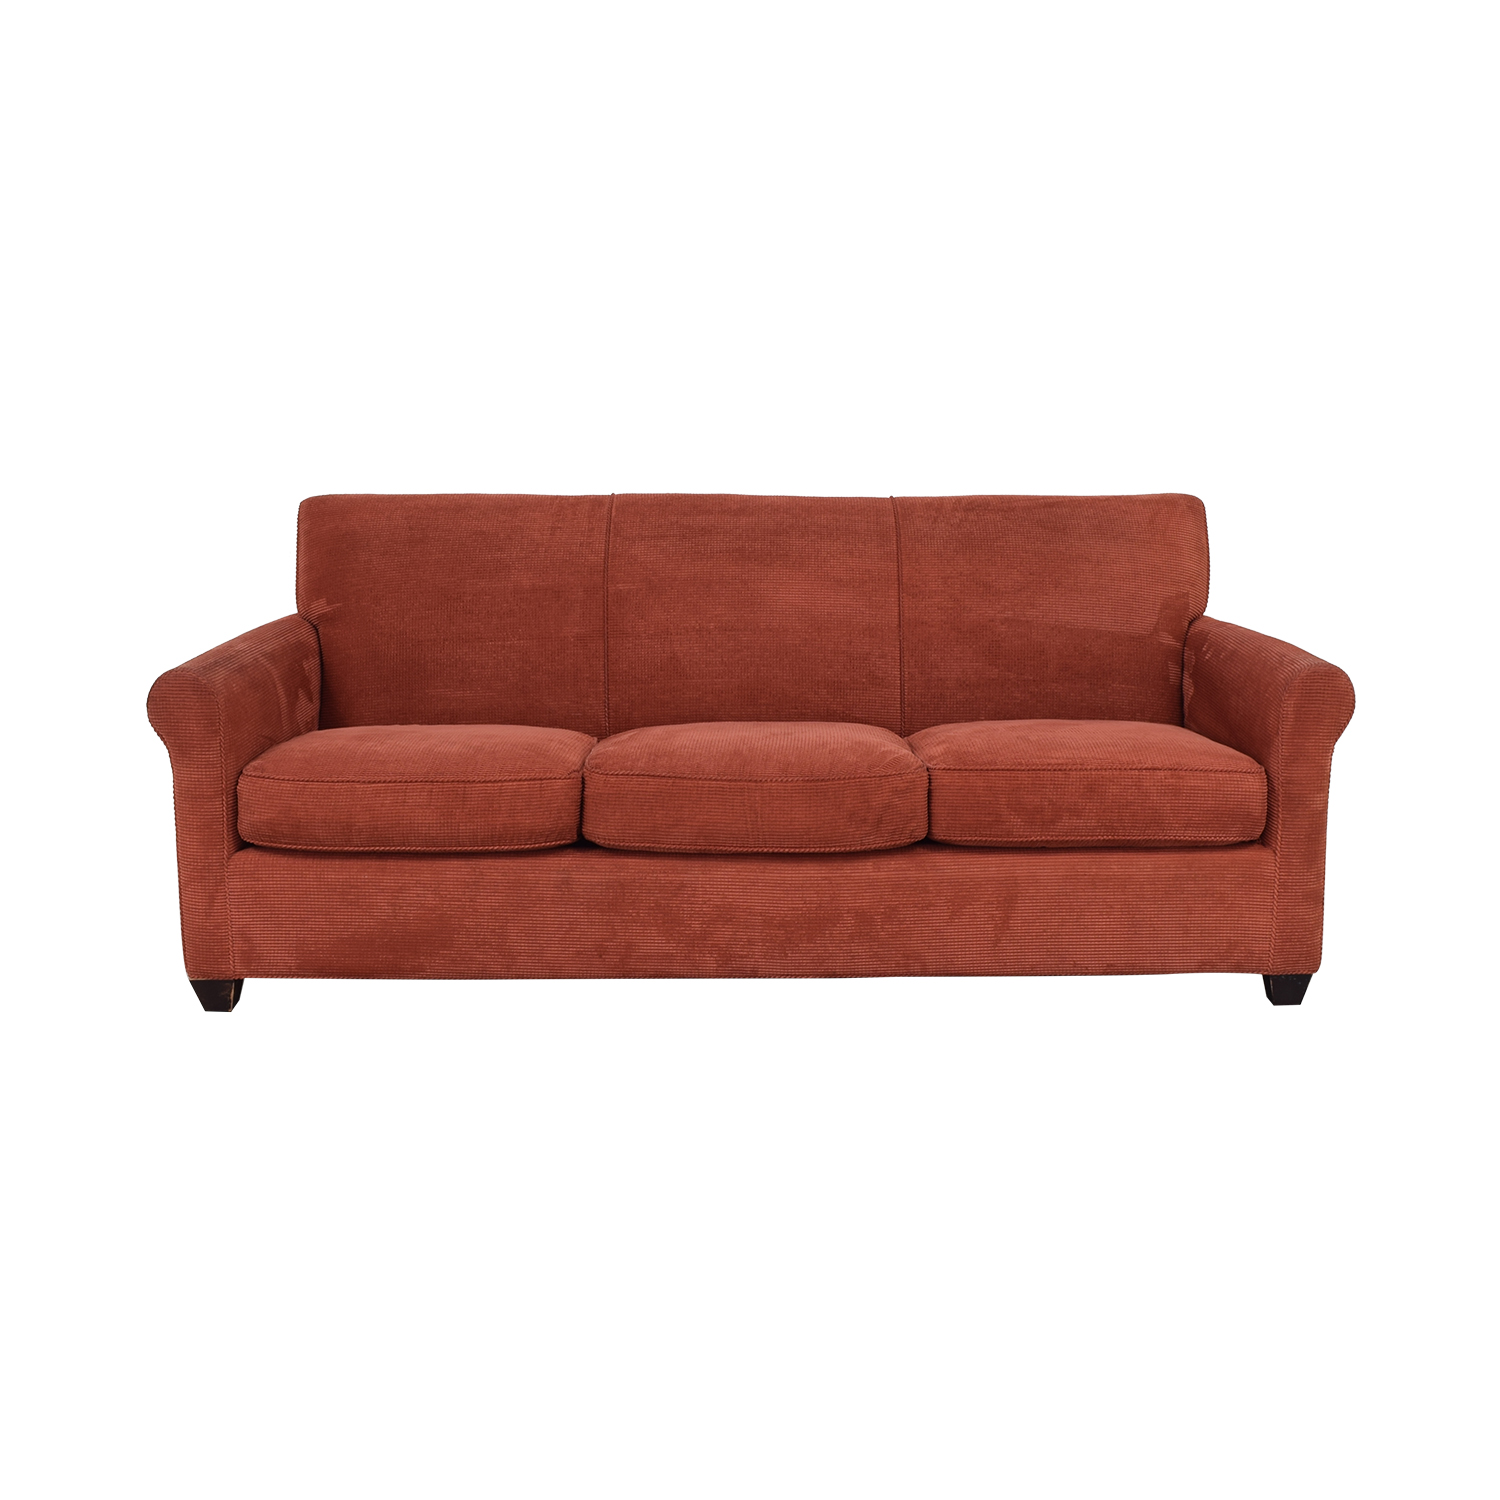 Crate & Barrel Crate & Barrel Three Cushion Sofa coupon